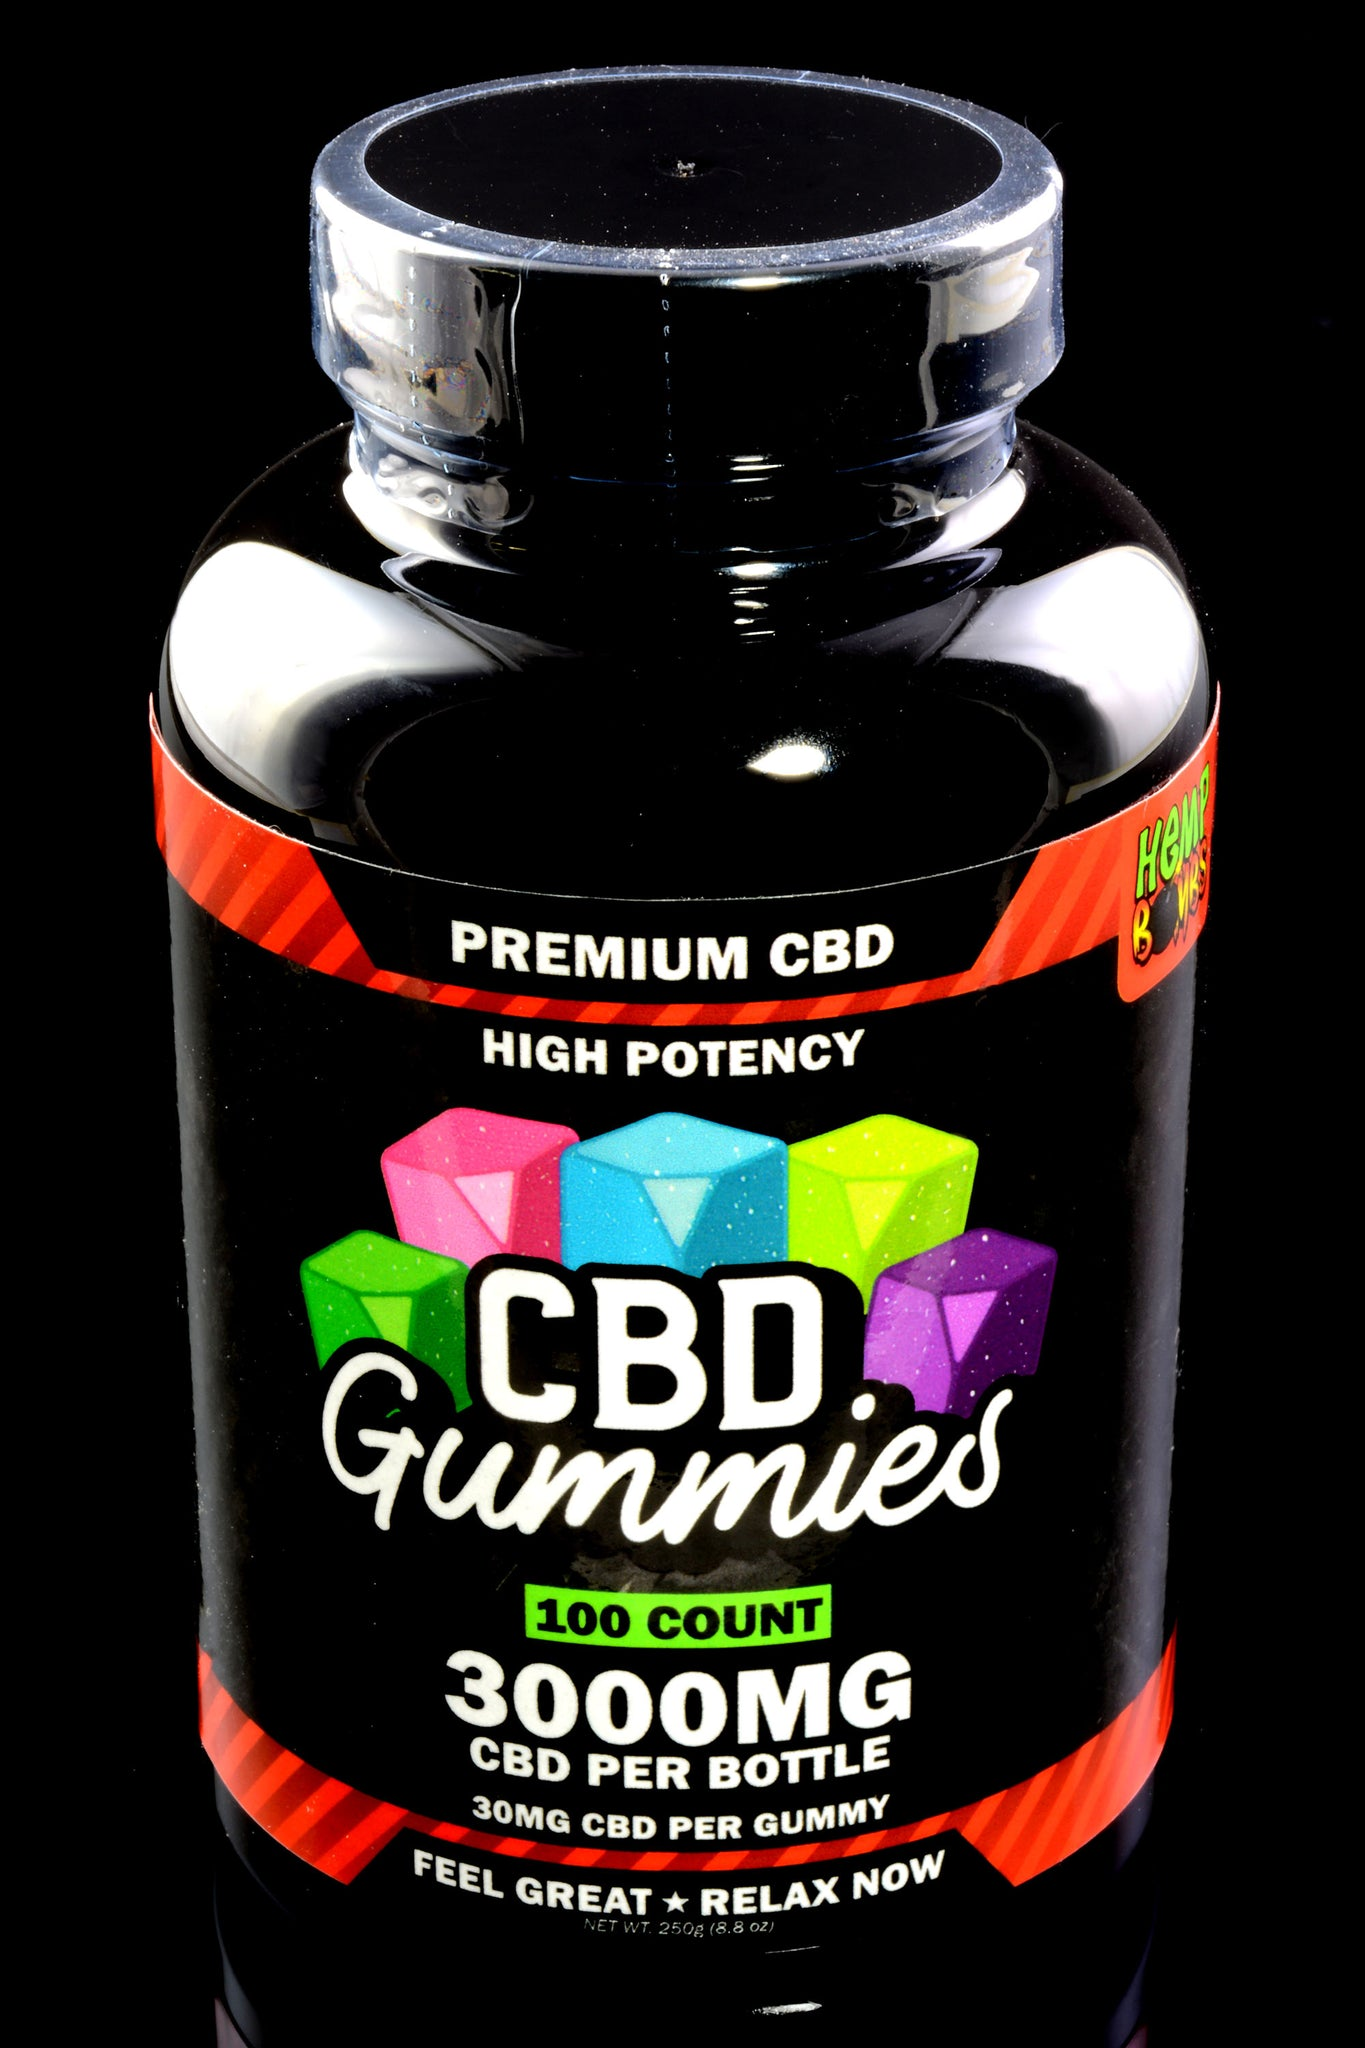 100 Count High Potency CBD Gummies - CBD259